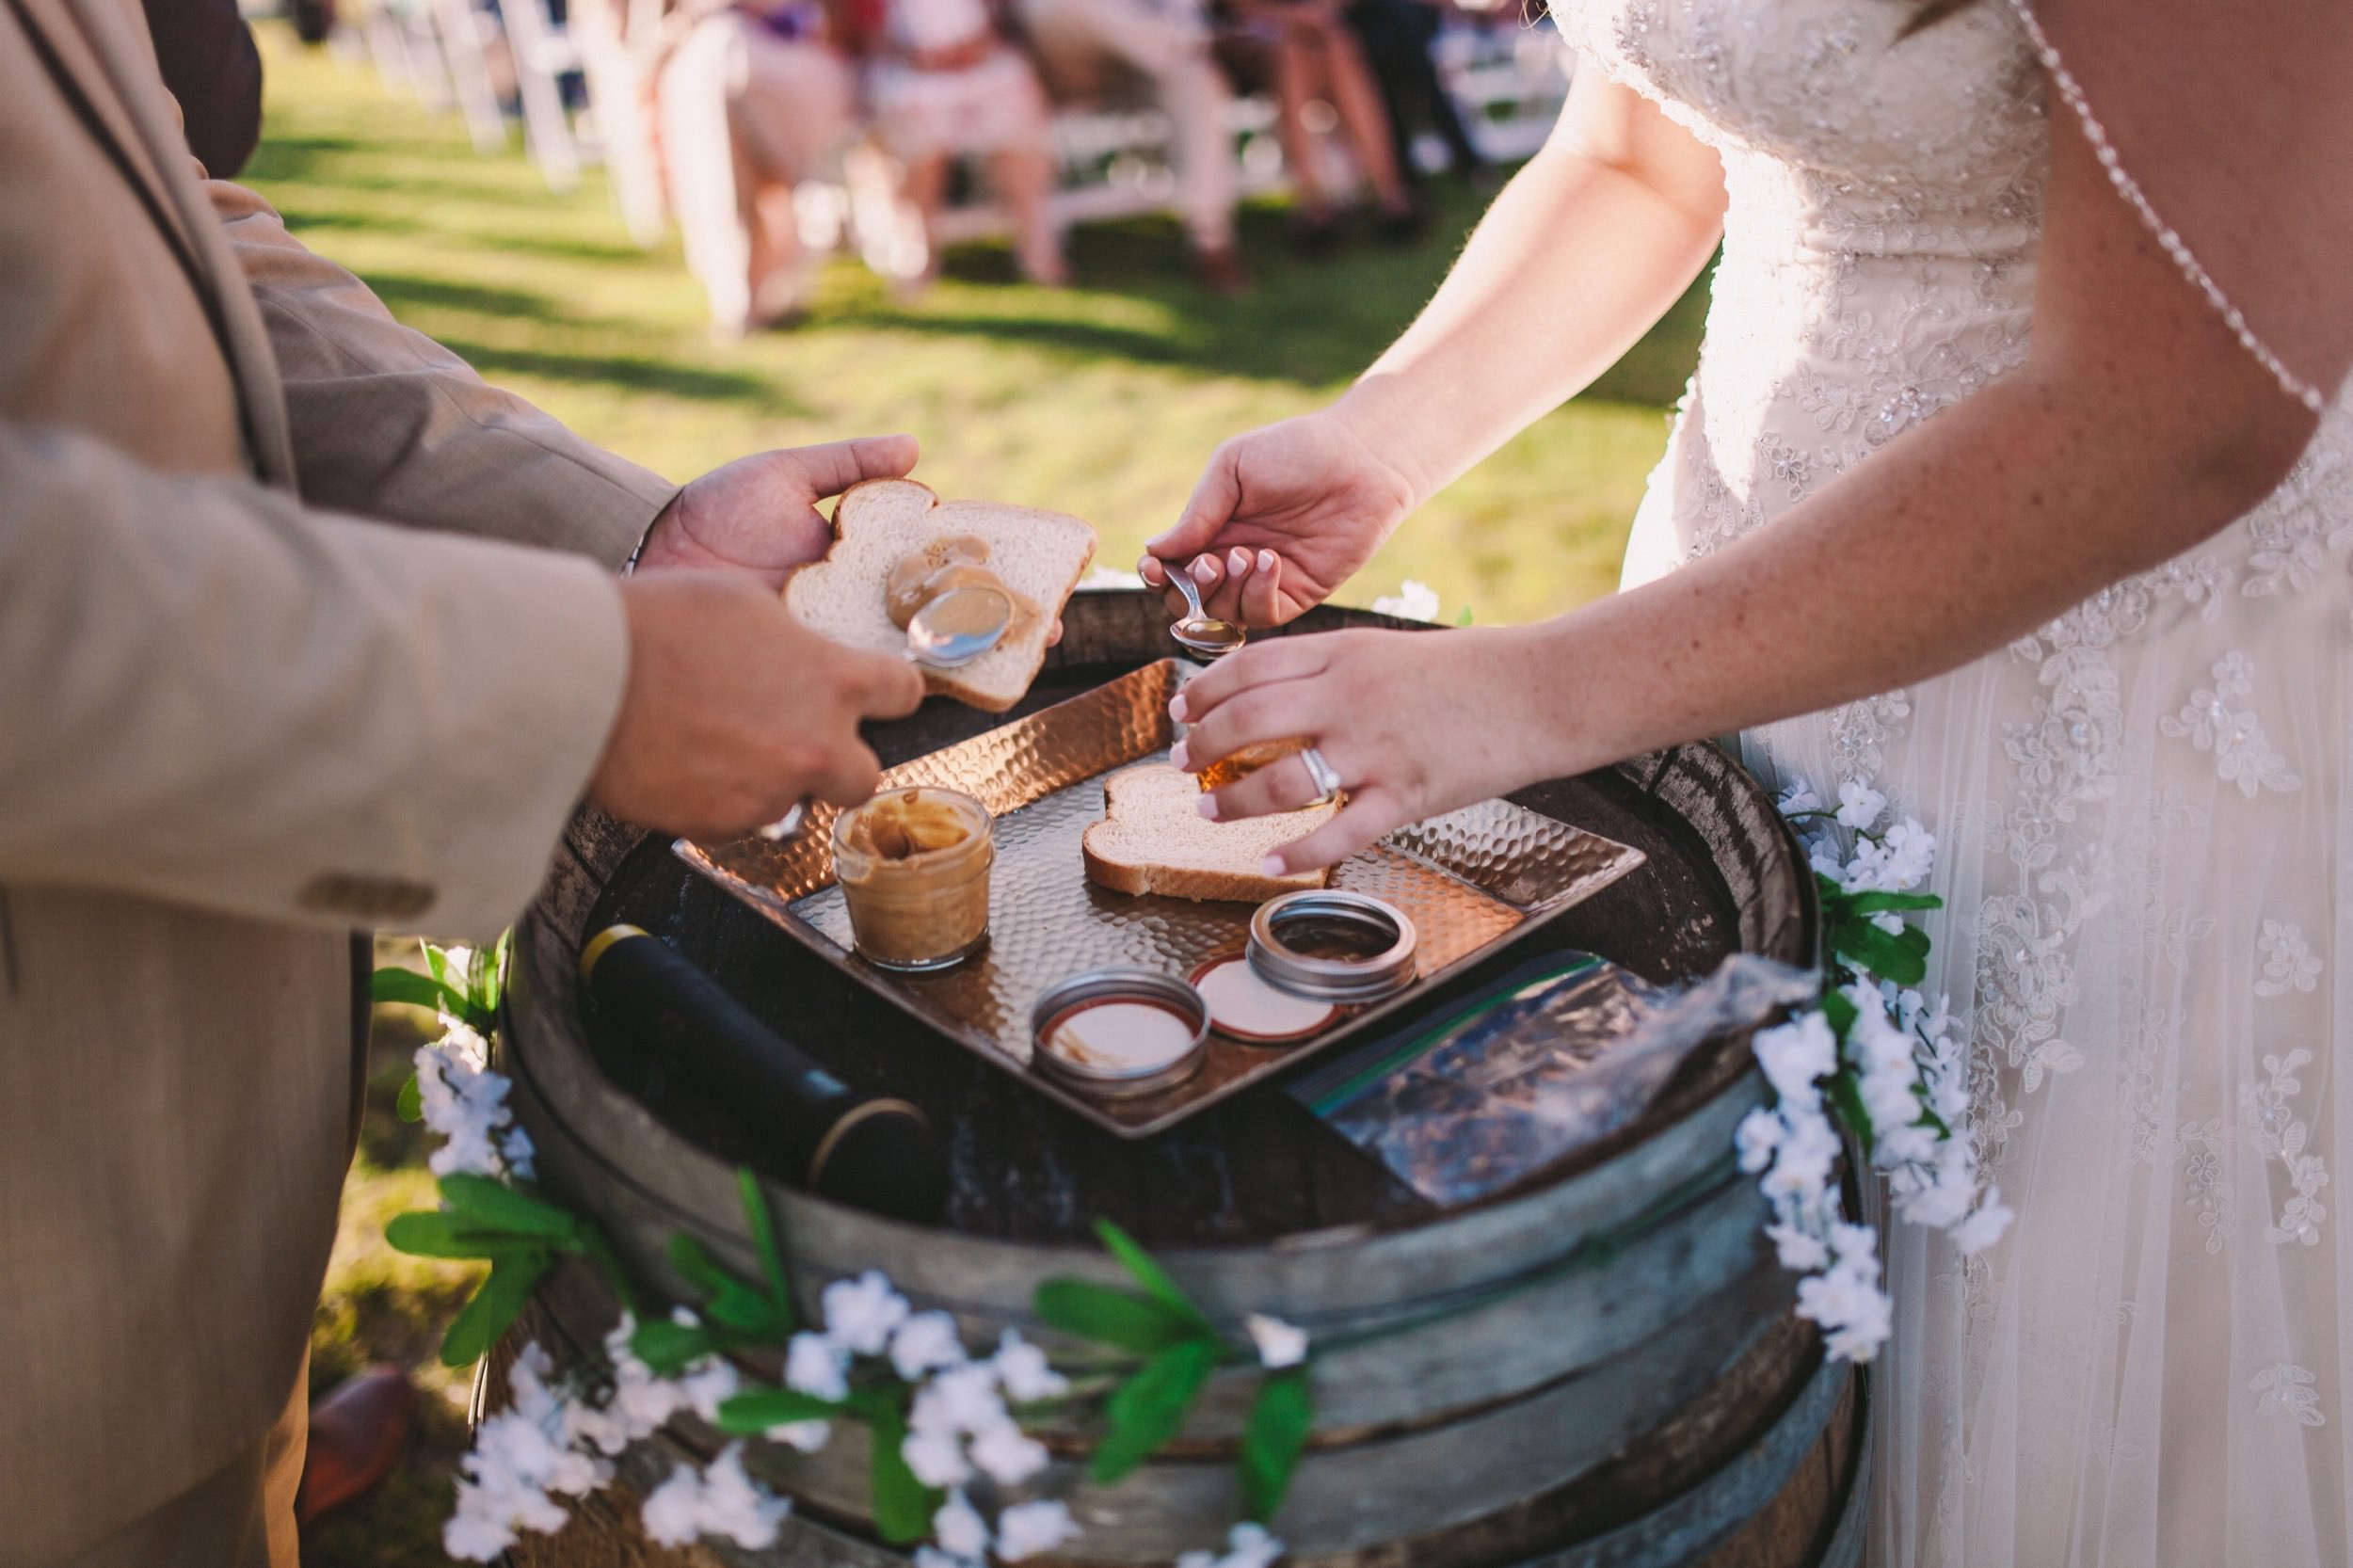 Unique Wedding Unity Ceremony - Making Peanut Butter & Honey Sandwich